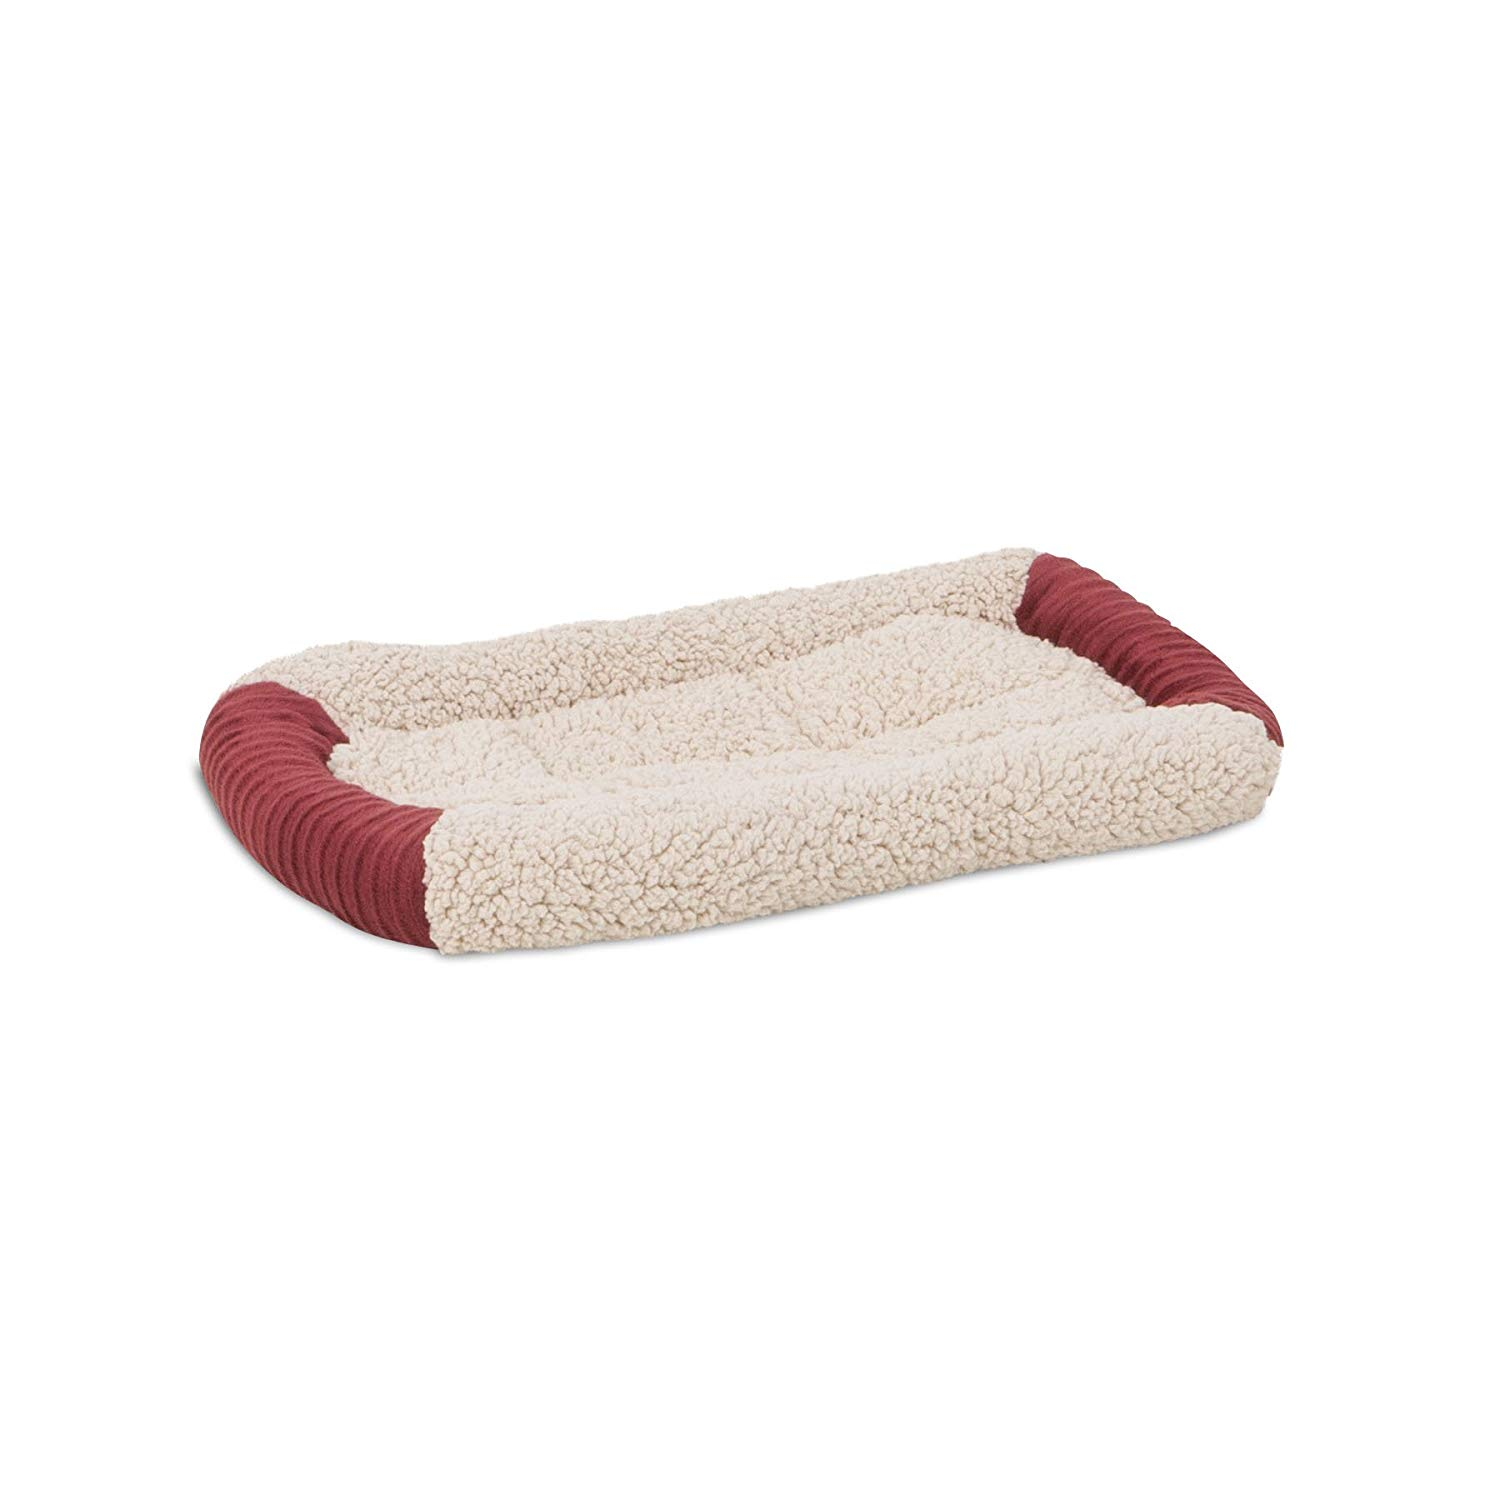 Aspen Pet Self Warming Barn Red Bolster Mat Image